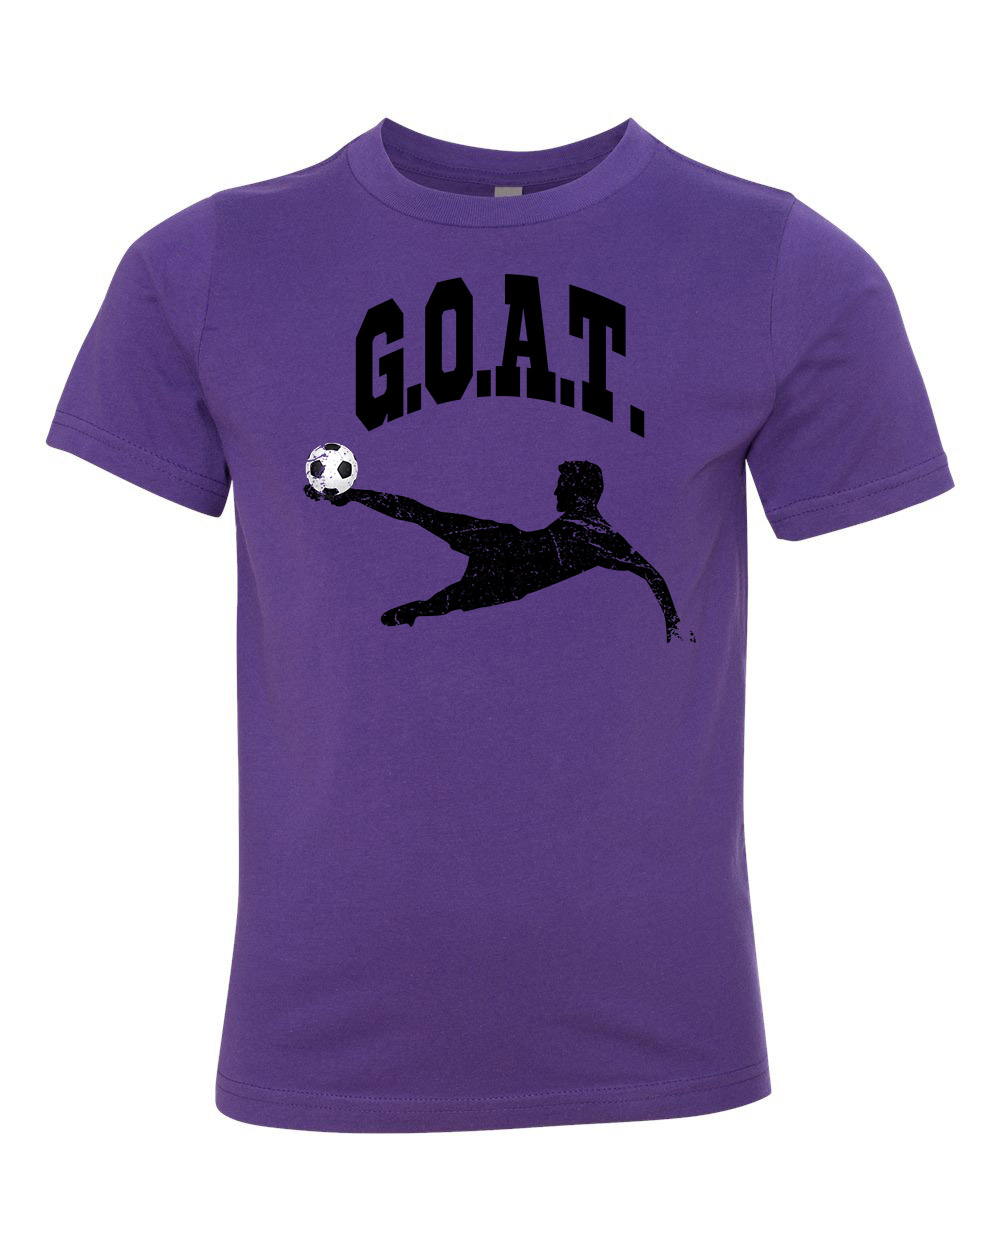 Greatest Of All Times G.O.A.T Soccer Youth Short Sleeve T-Shirt